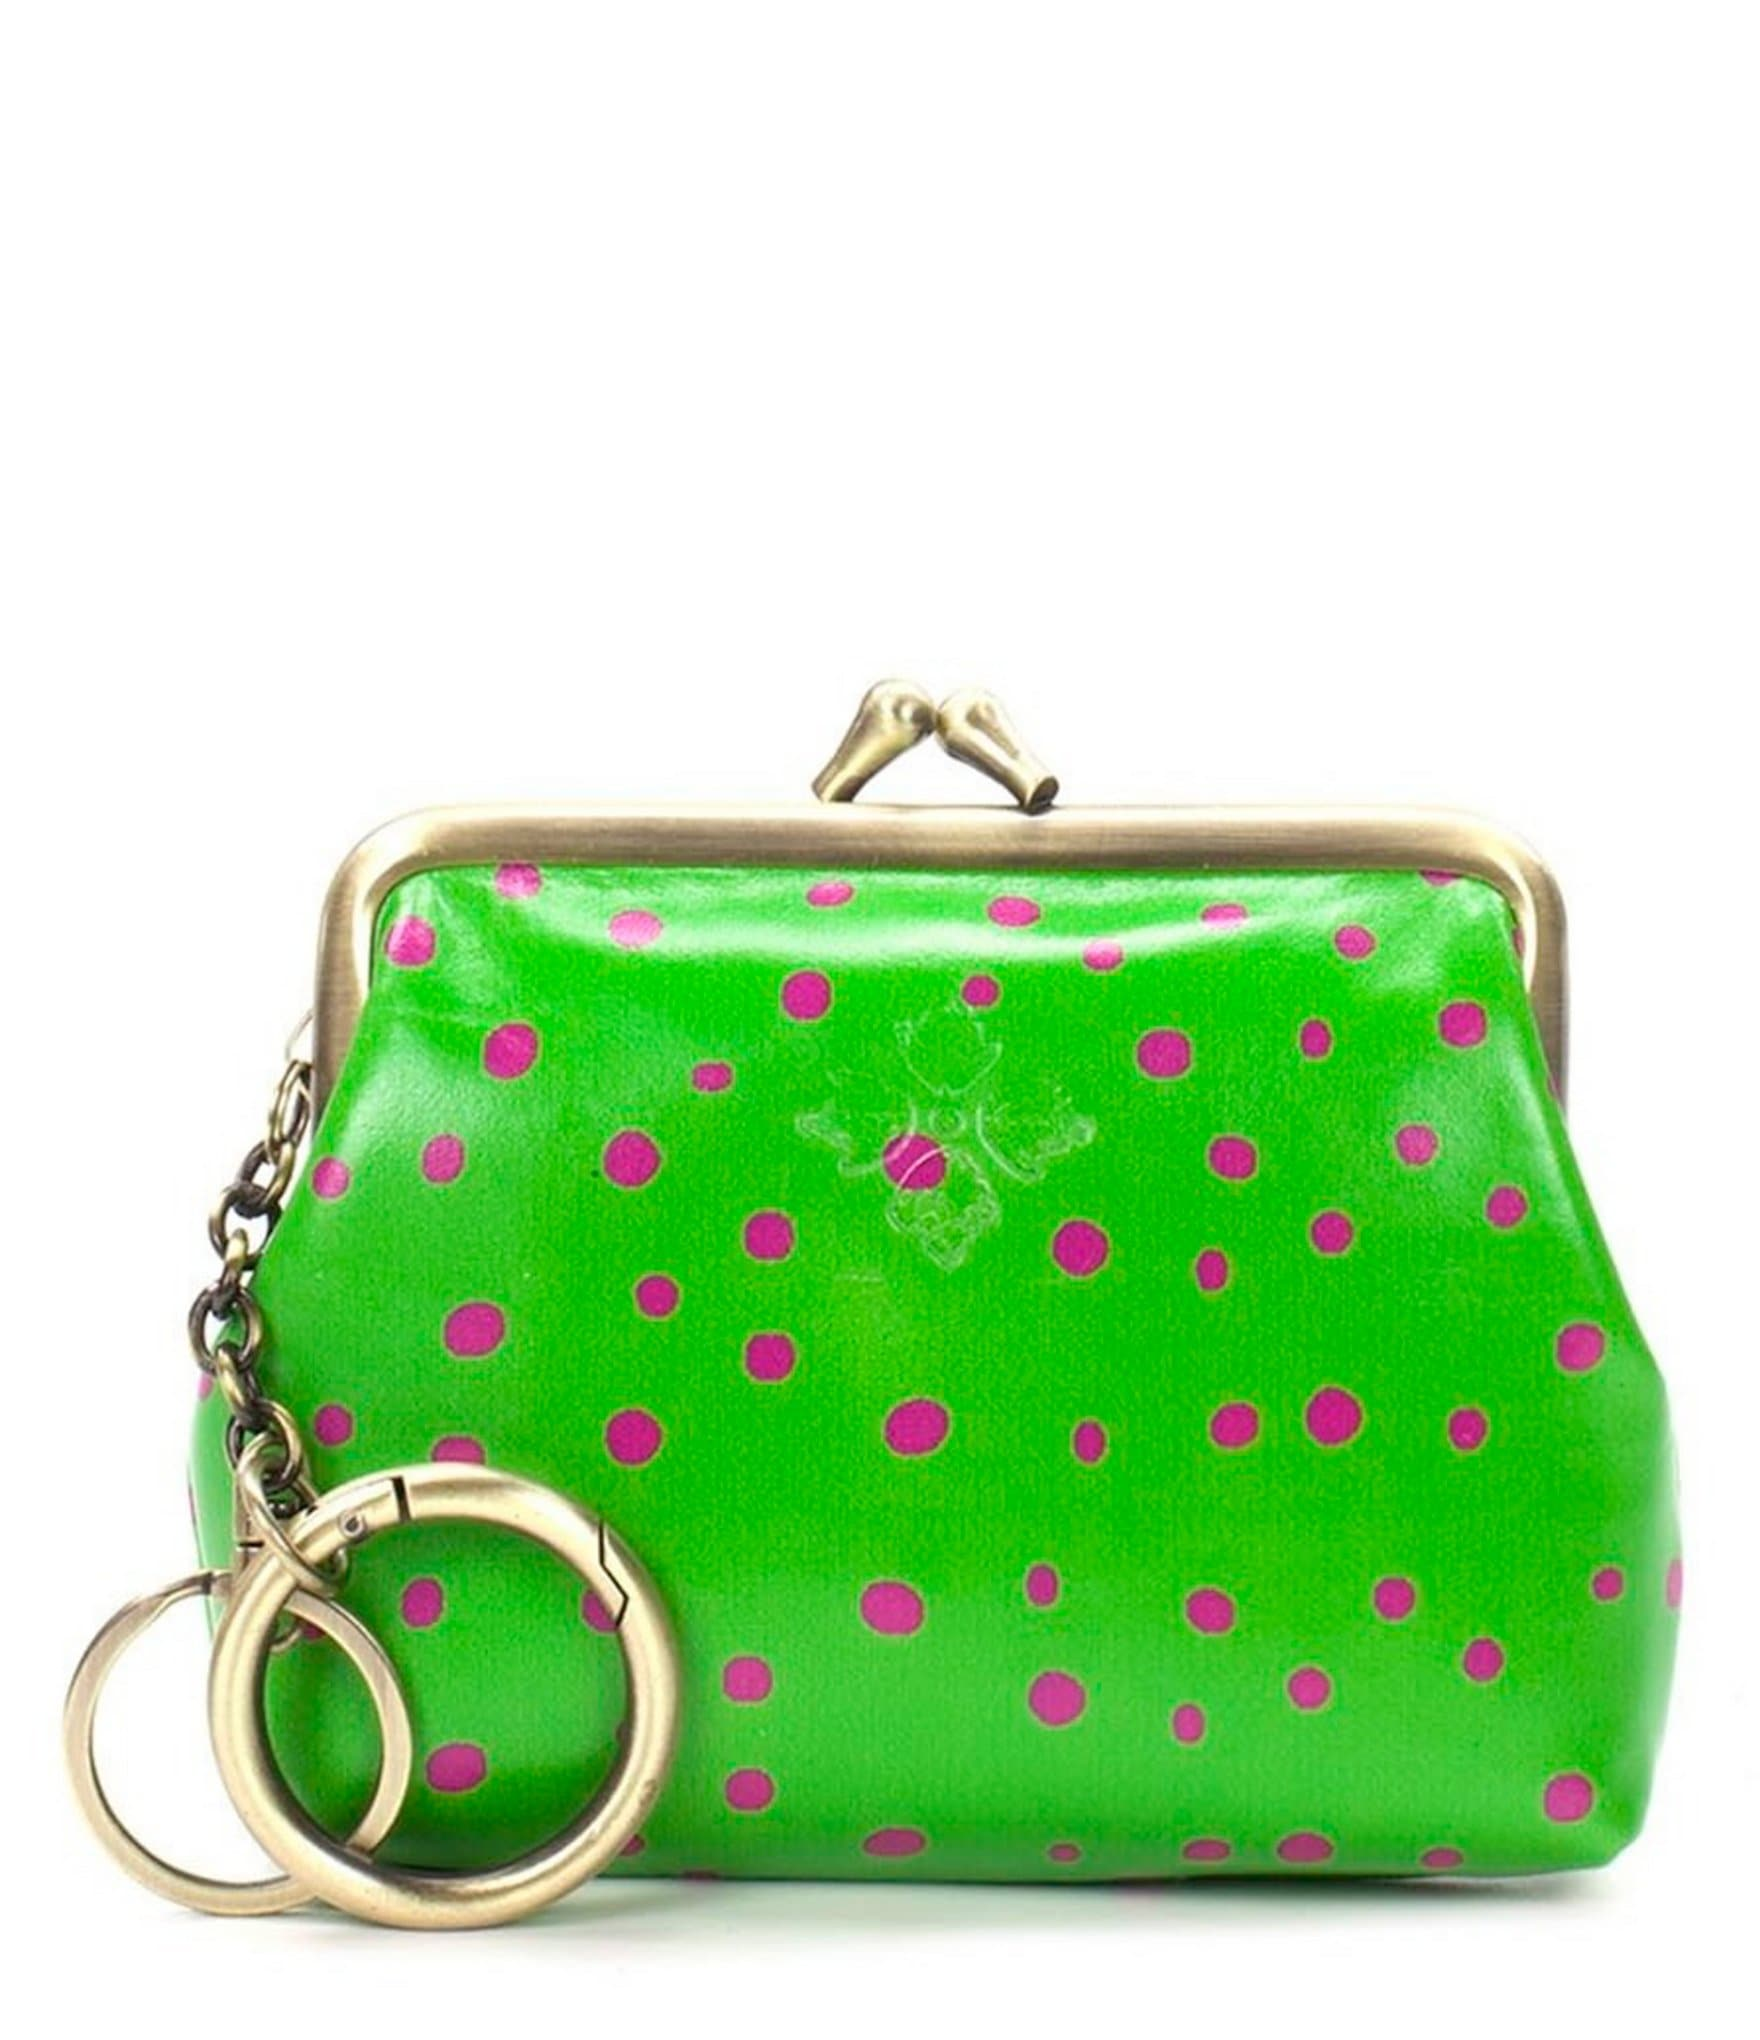 What Kind of Fabric Are Coach Bags Made Of?